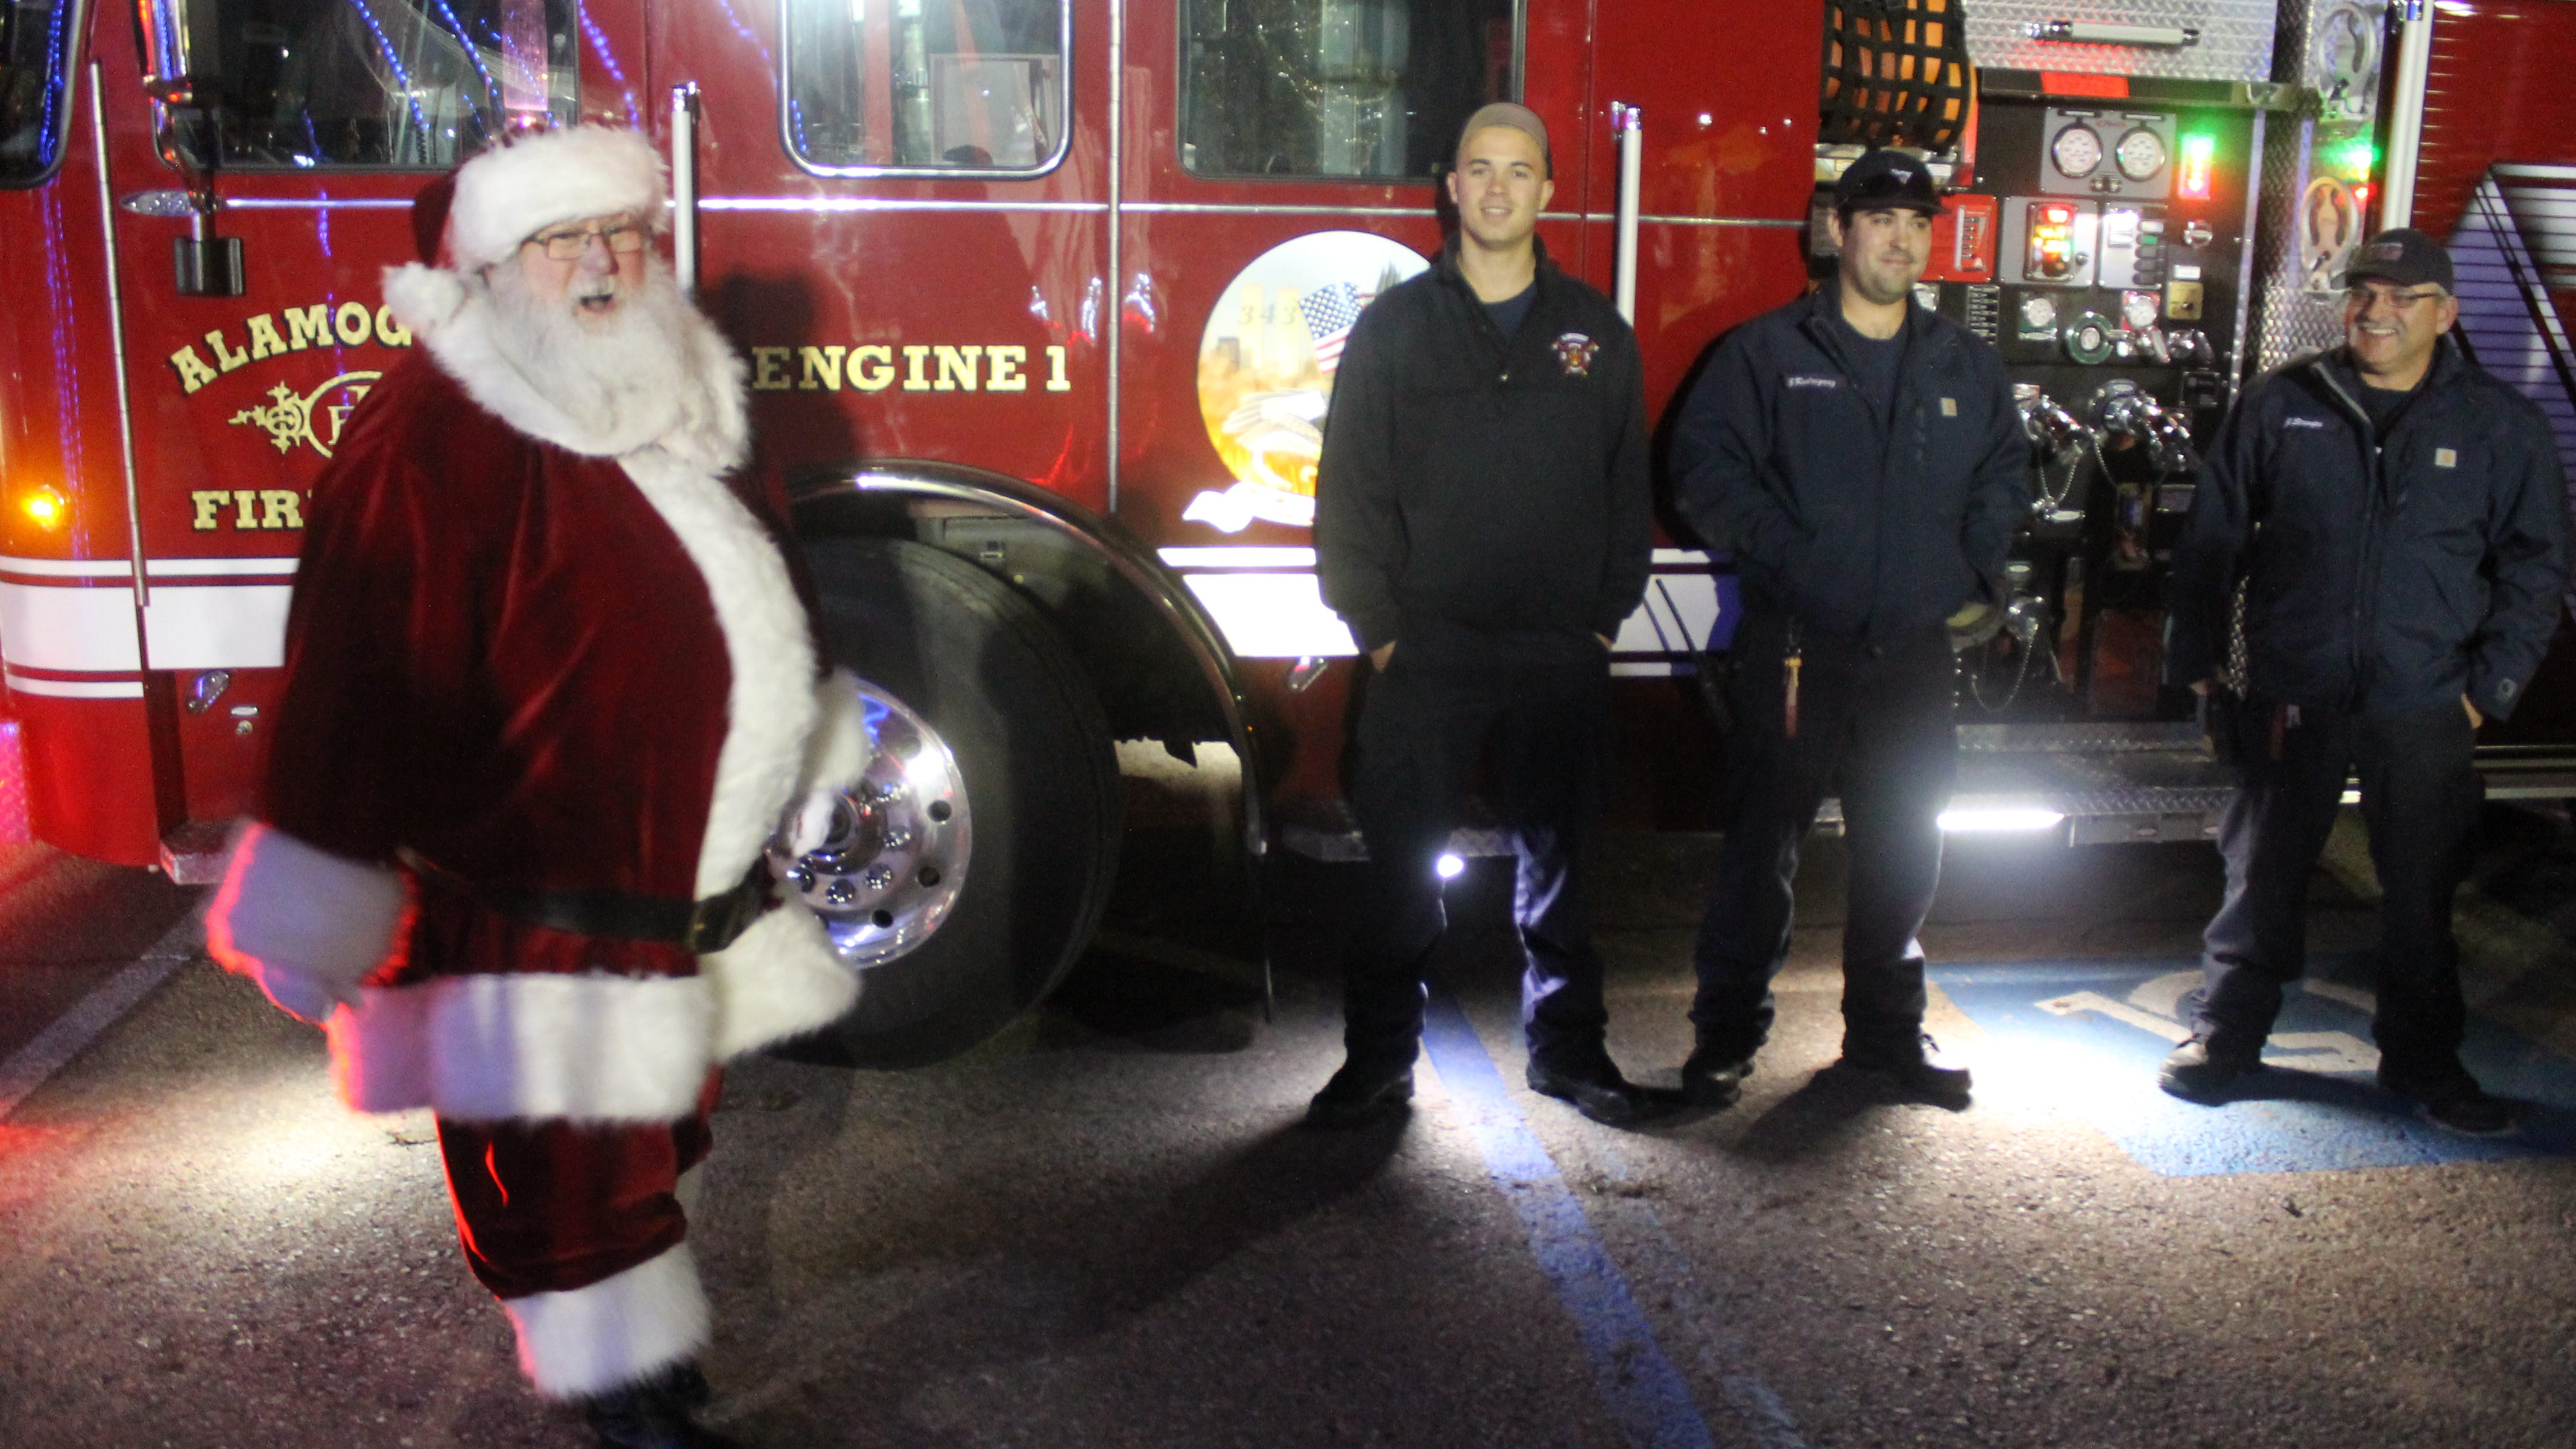 Santa Claus made a special appearance at Alamogordo's second-annual tree-lighting event in Washington Park on Friday evening.